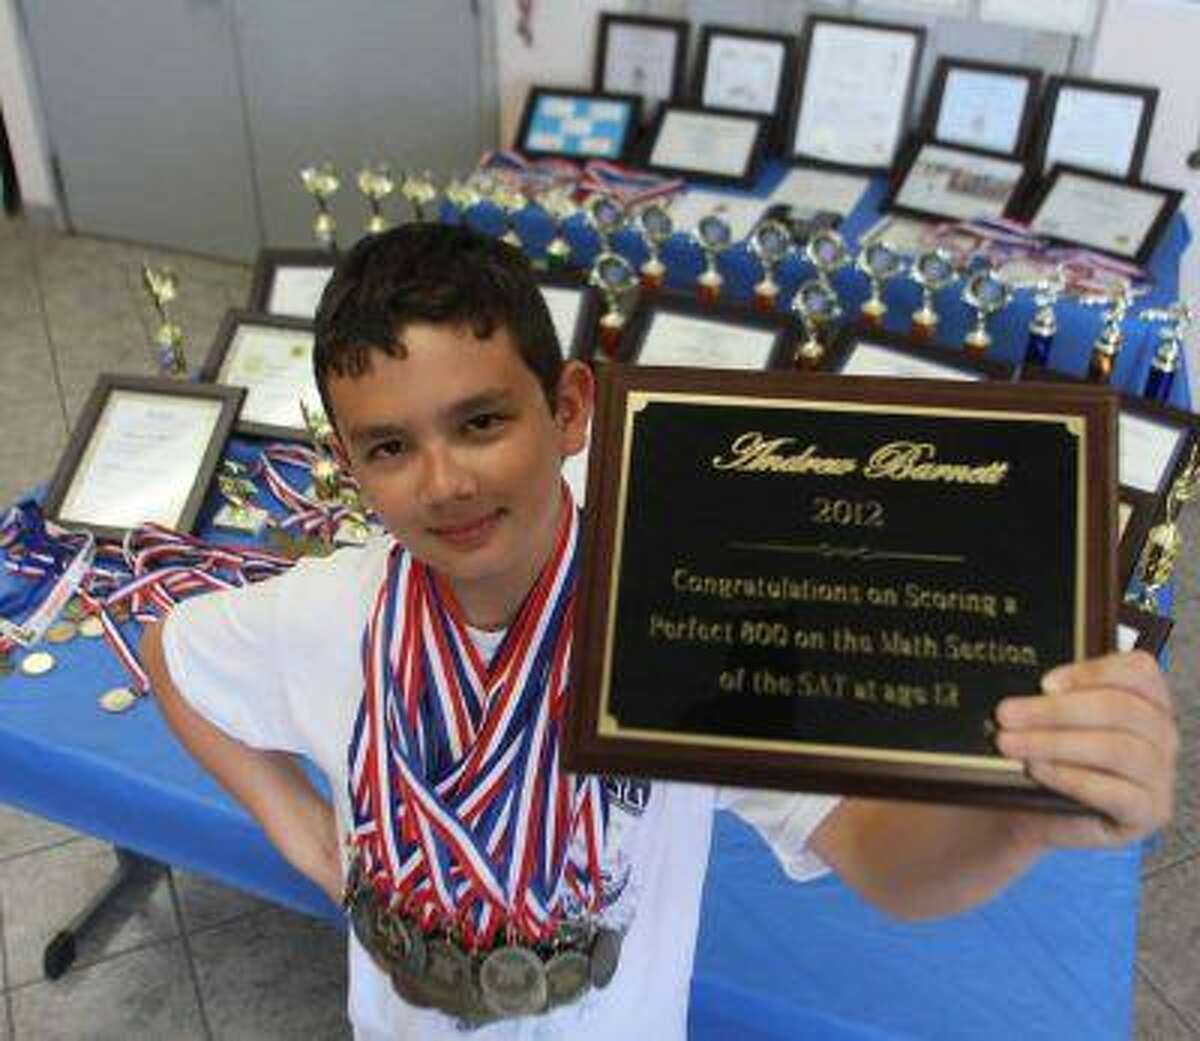 Andrew Barnett shows a plaque which commemorates his perfect 800 score on the SAT. (Victor Calzada/El Paso Times)